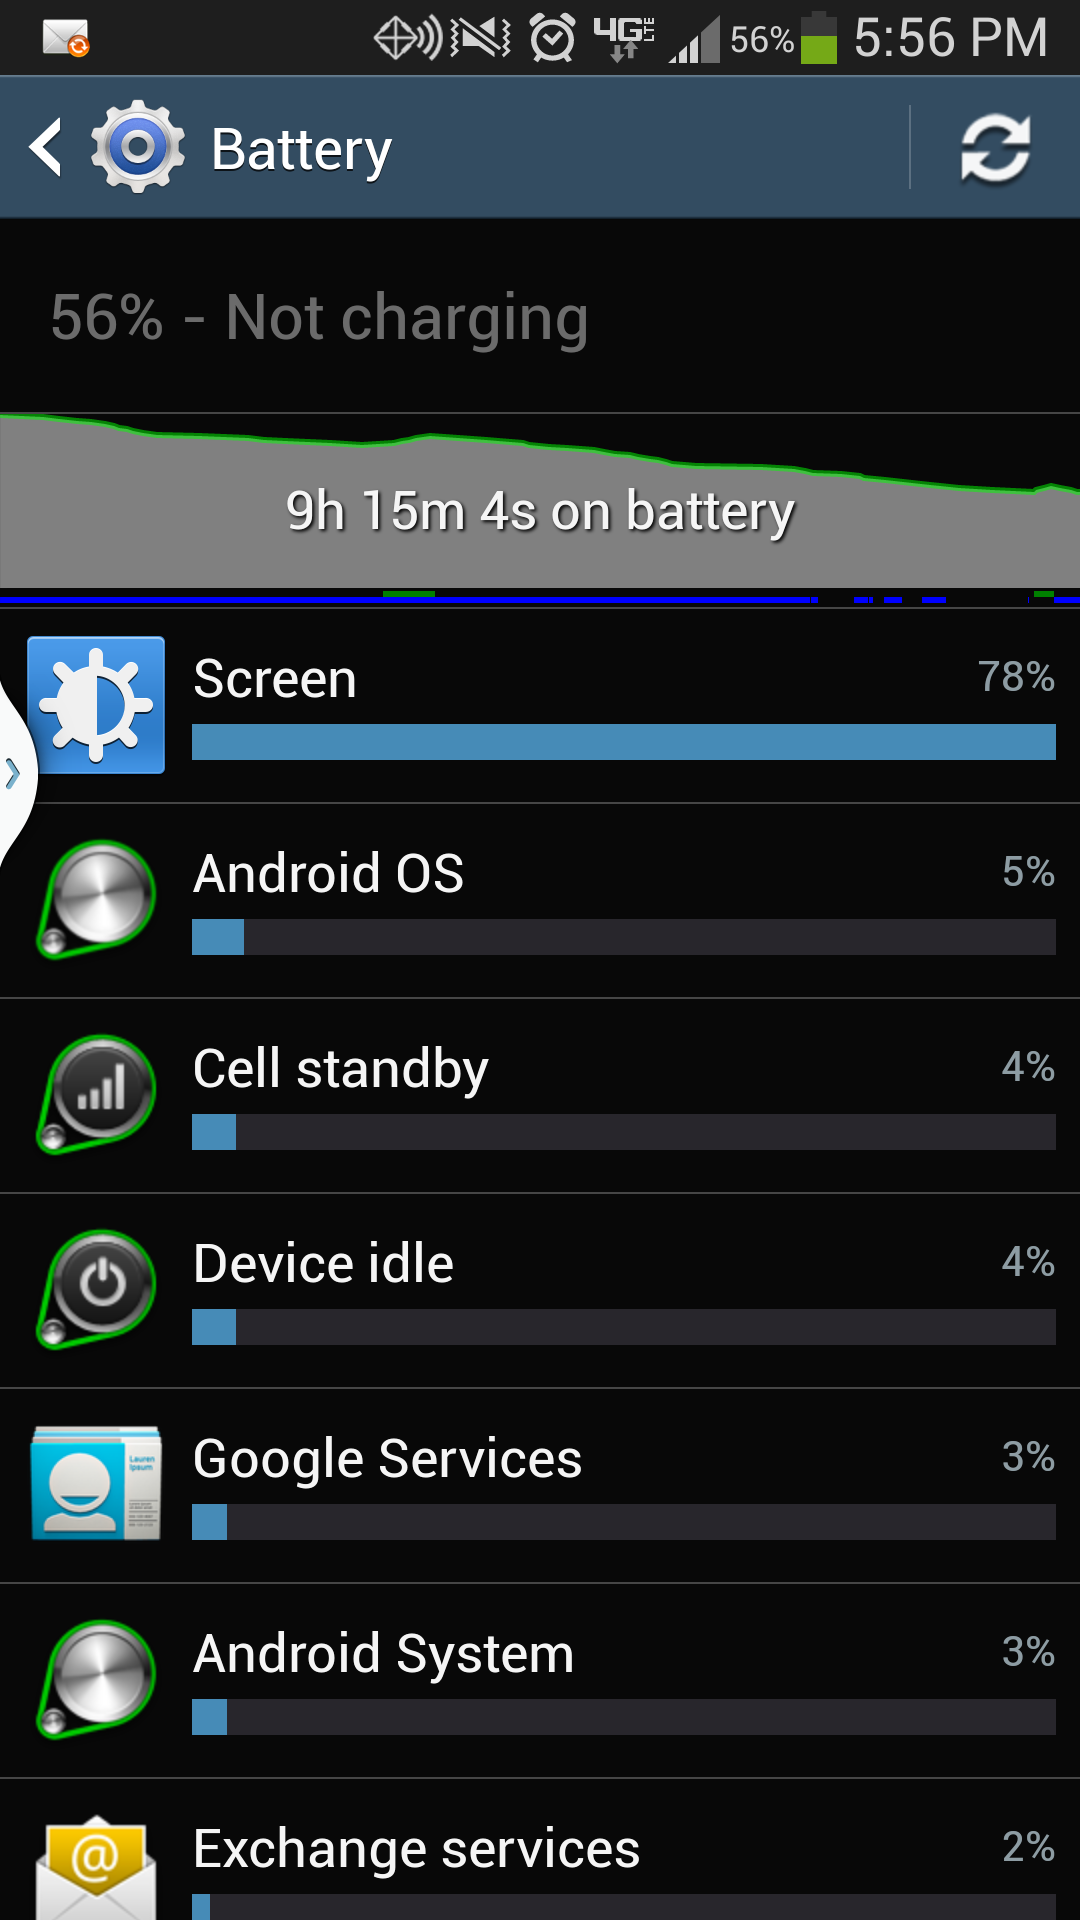 Galaxy S4 sort apps by battery usage